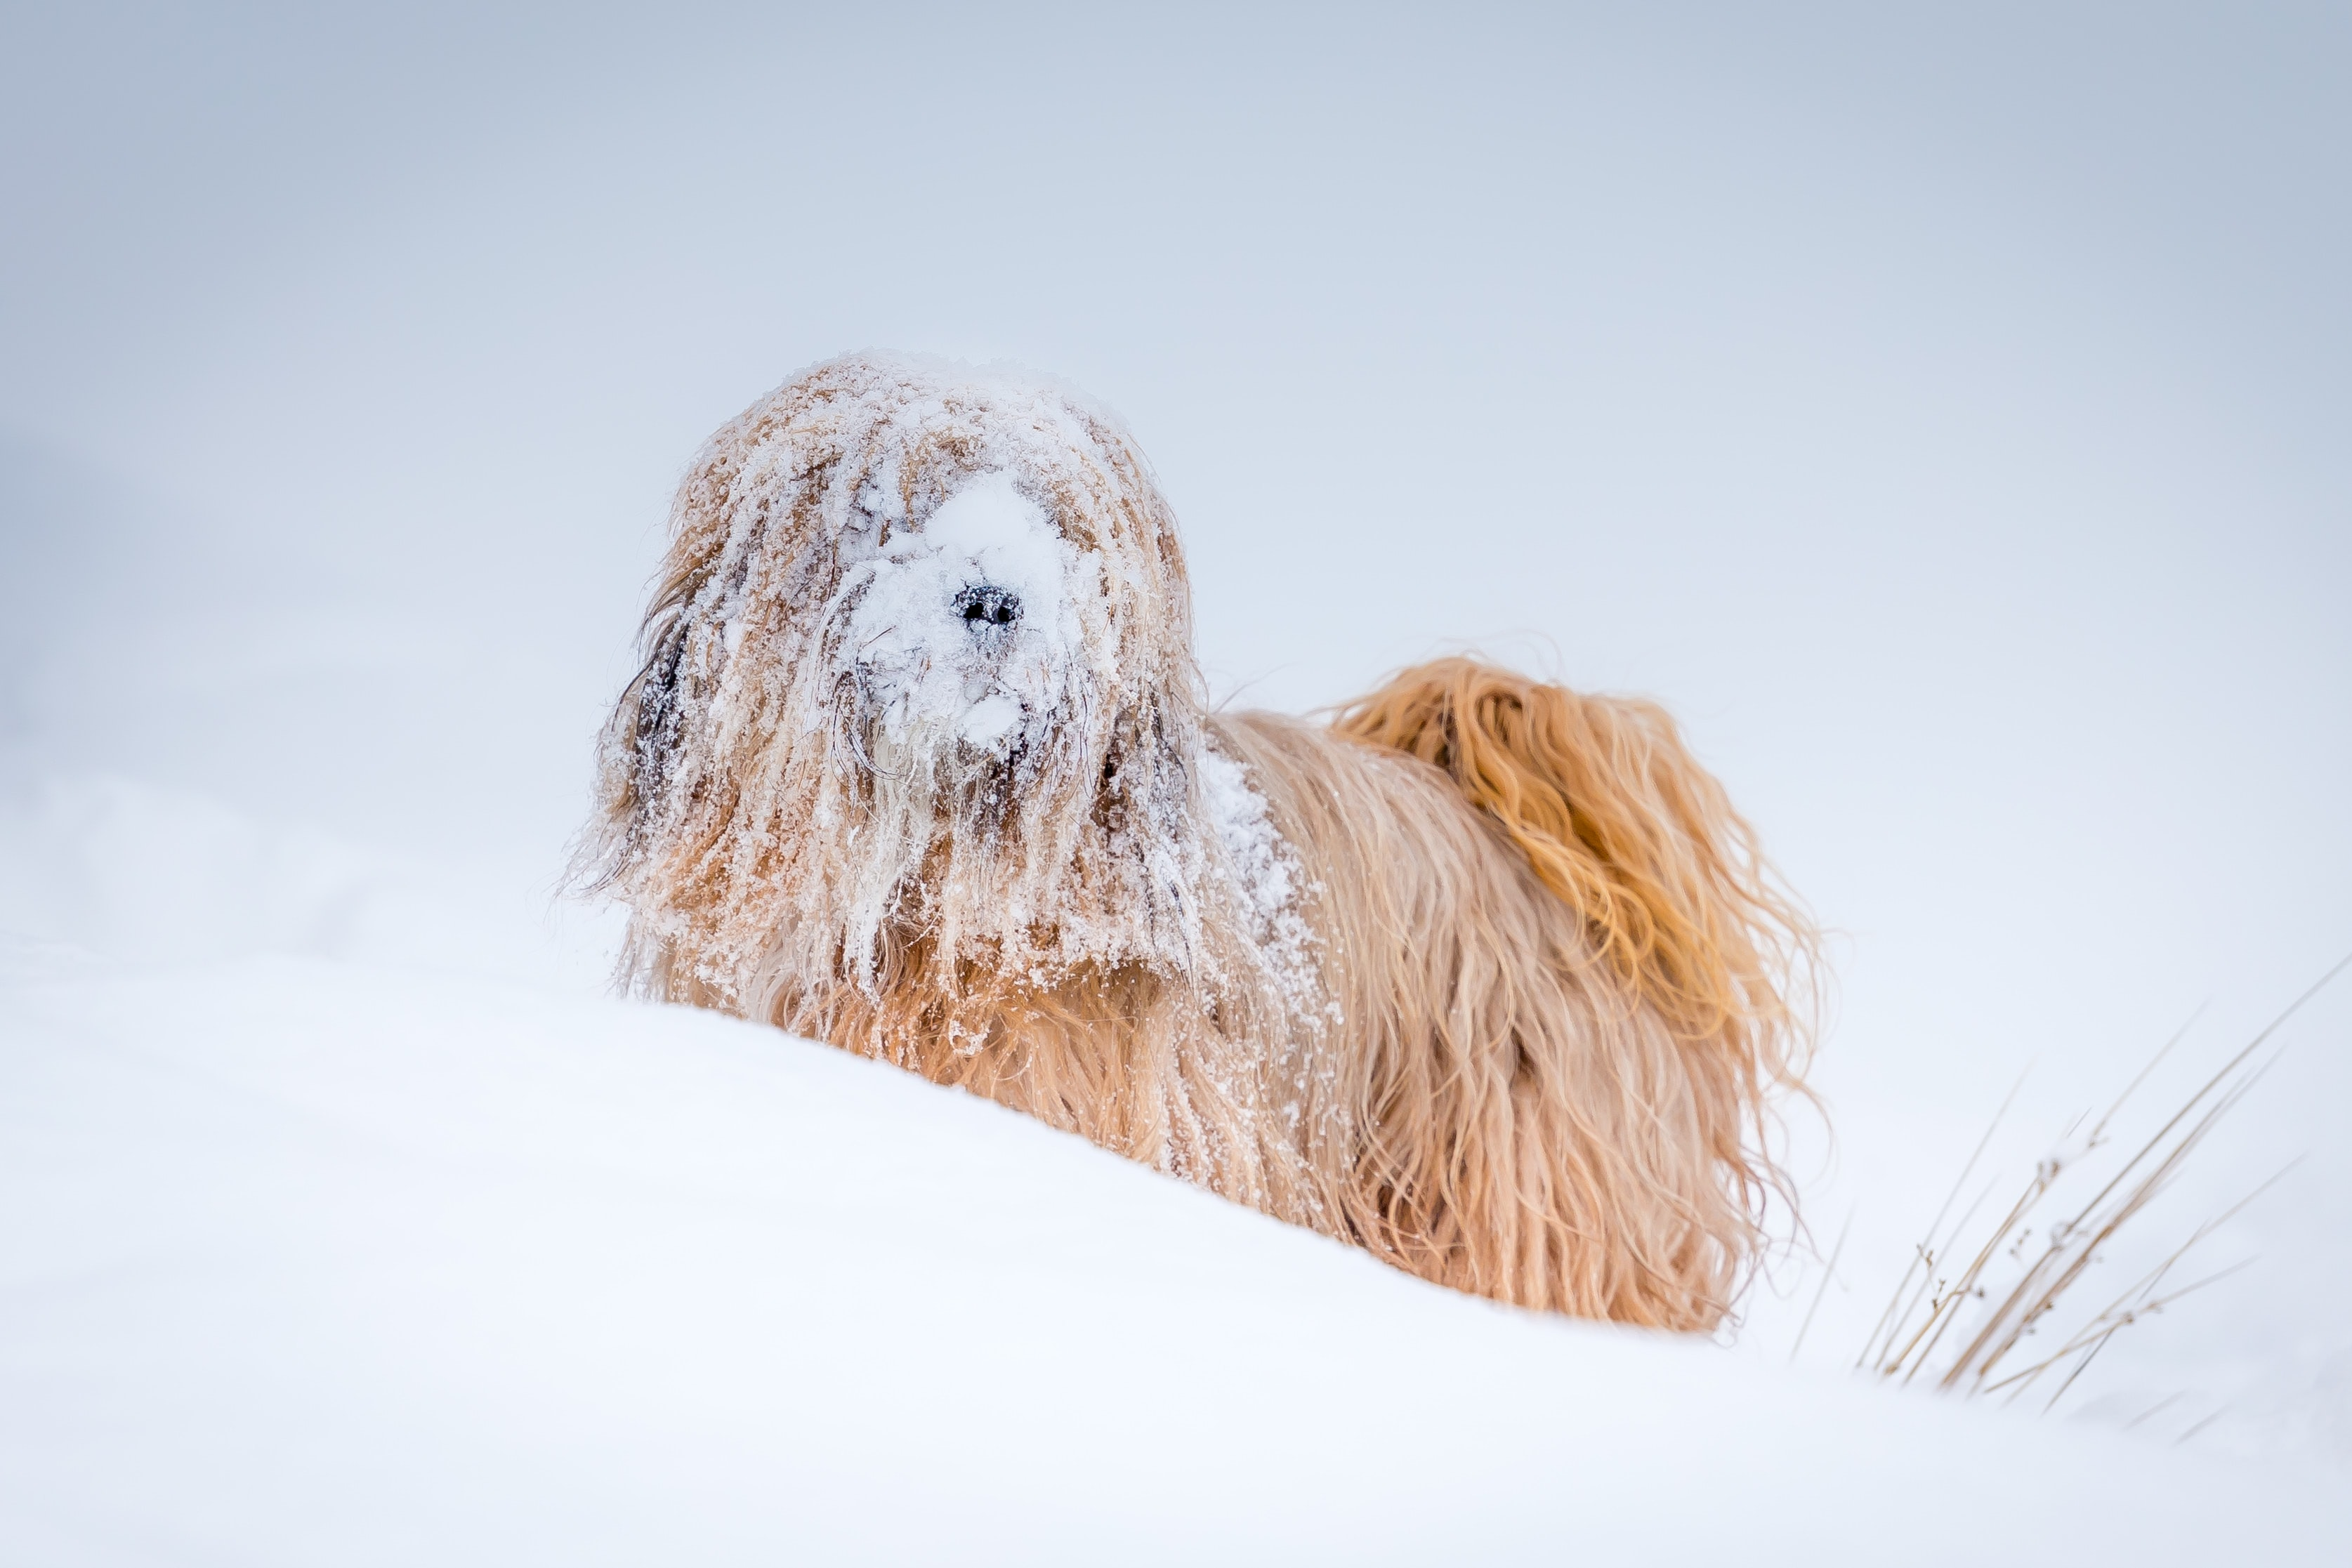 Sheepdog playing in snow